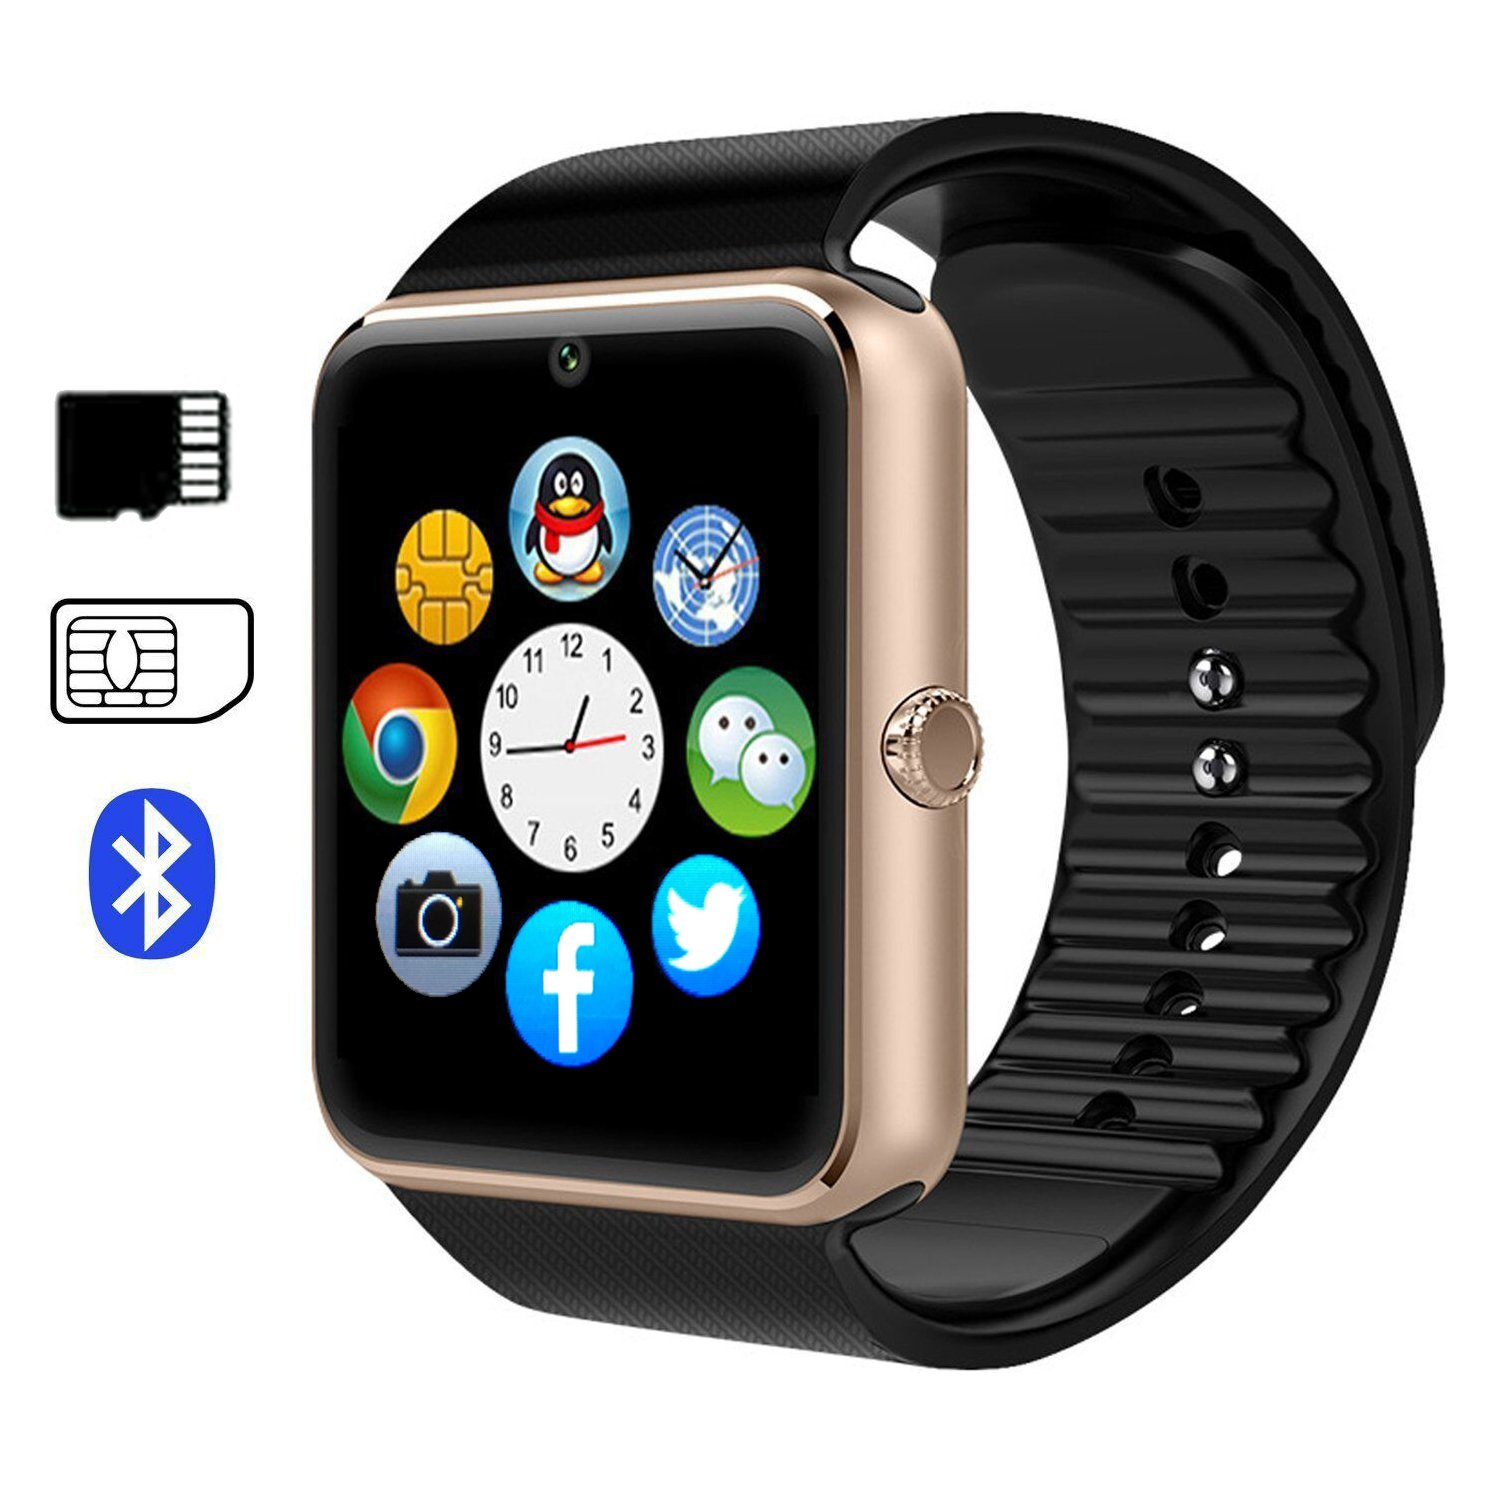 EiffelT Smart watch GT08 Touch Screen Bluetooth WristWatch with Camera/SIM Card Slot/Sleep Monitoring for Android (Full Functions) and IOS (Partial Functions) (Rose Gold)